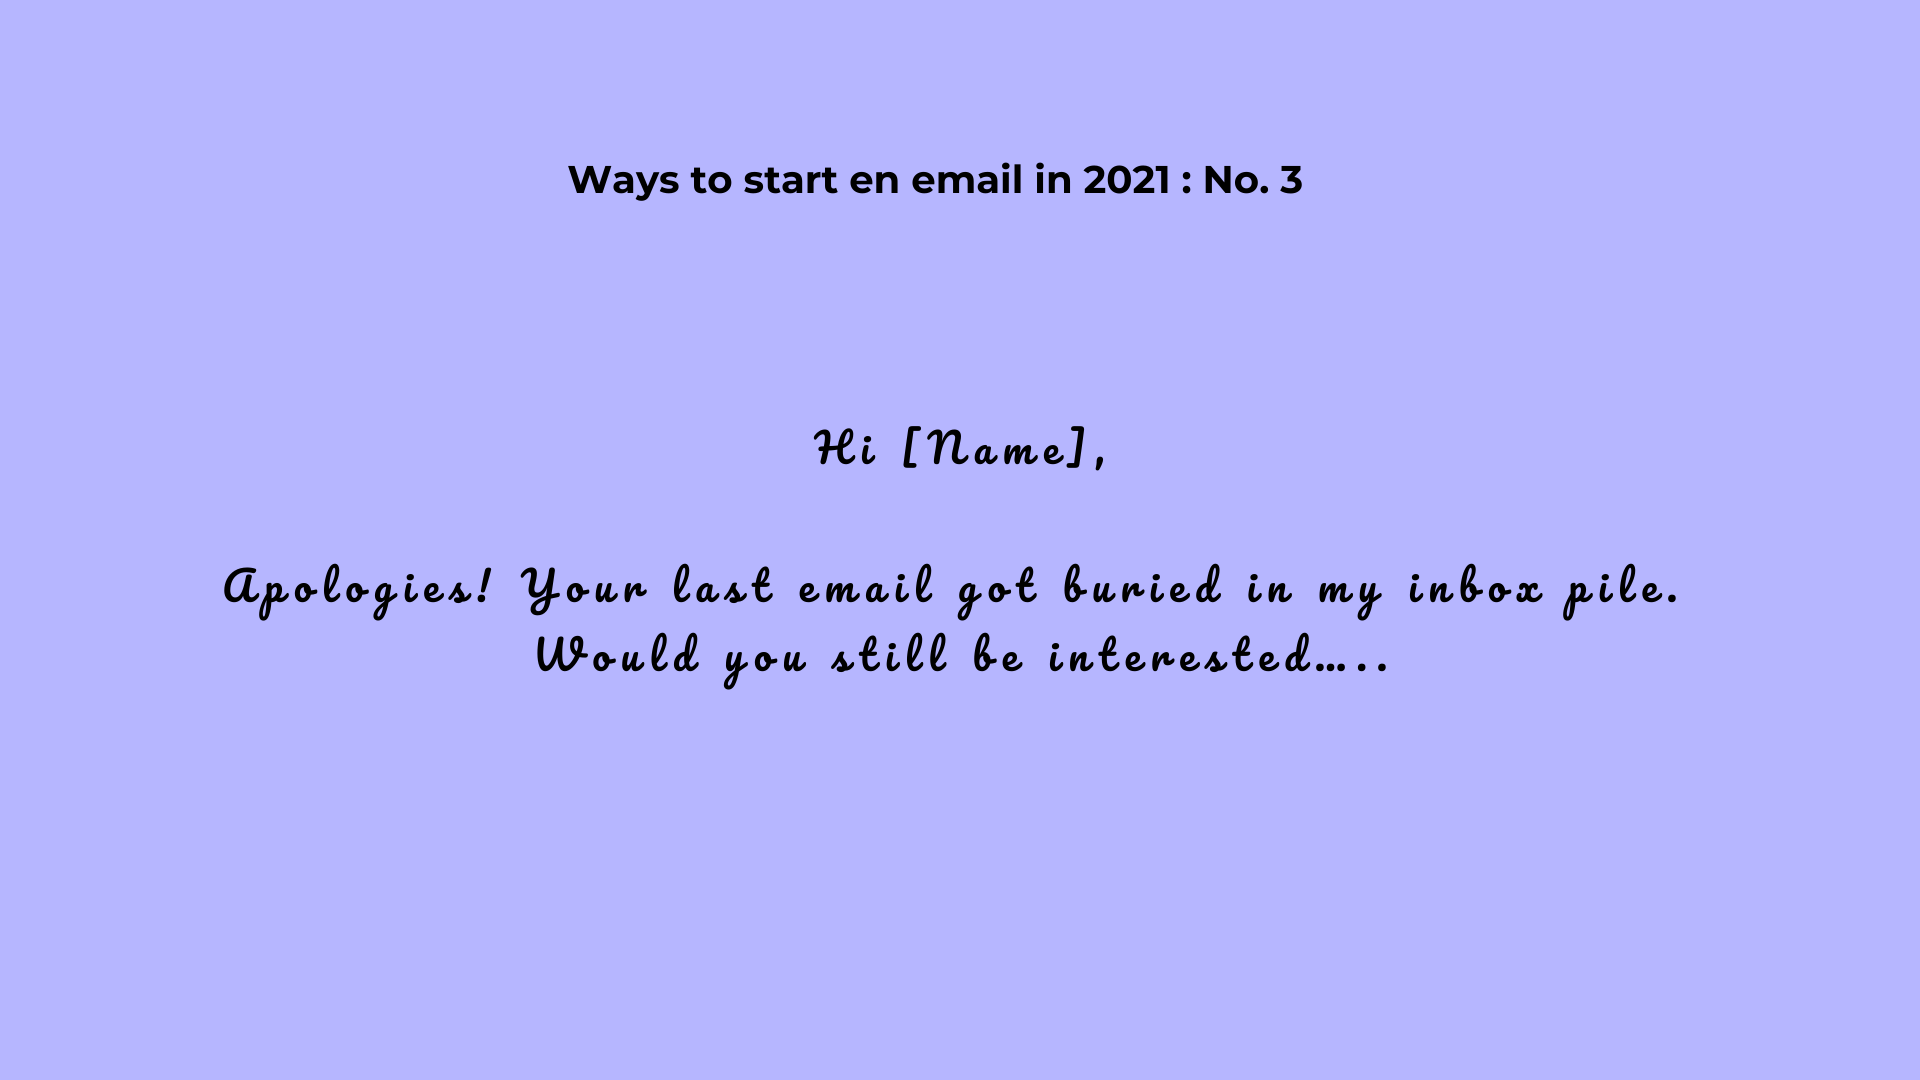 way-3-ways-to-start-an-email-in-2021